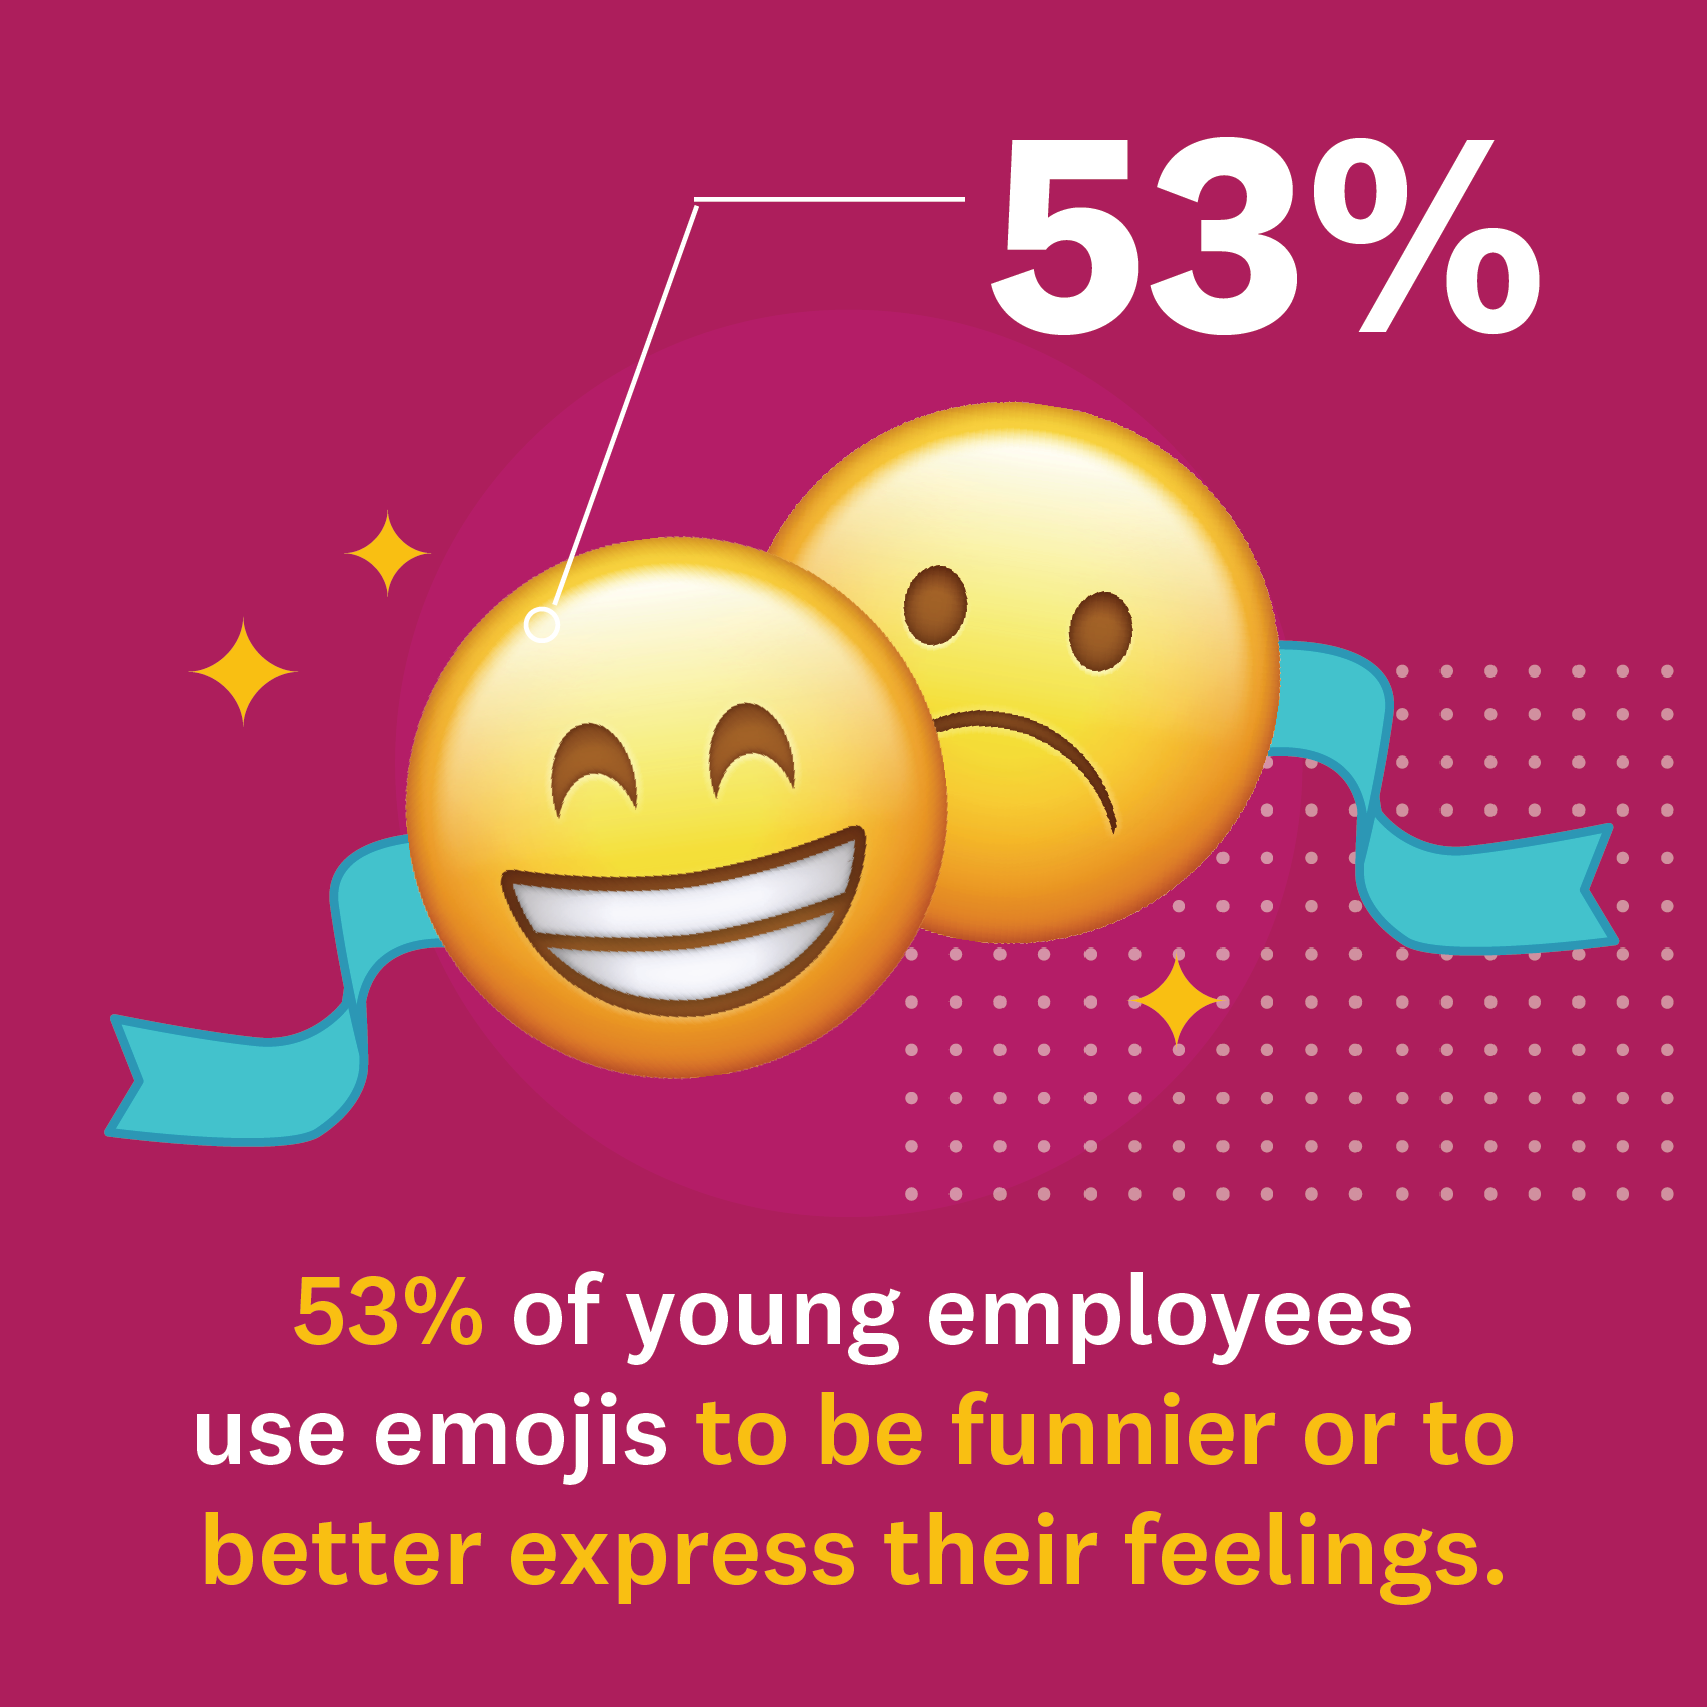 Stat on why young employees use emojis